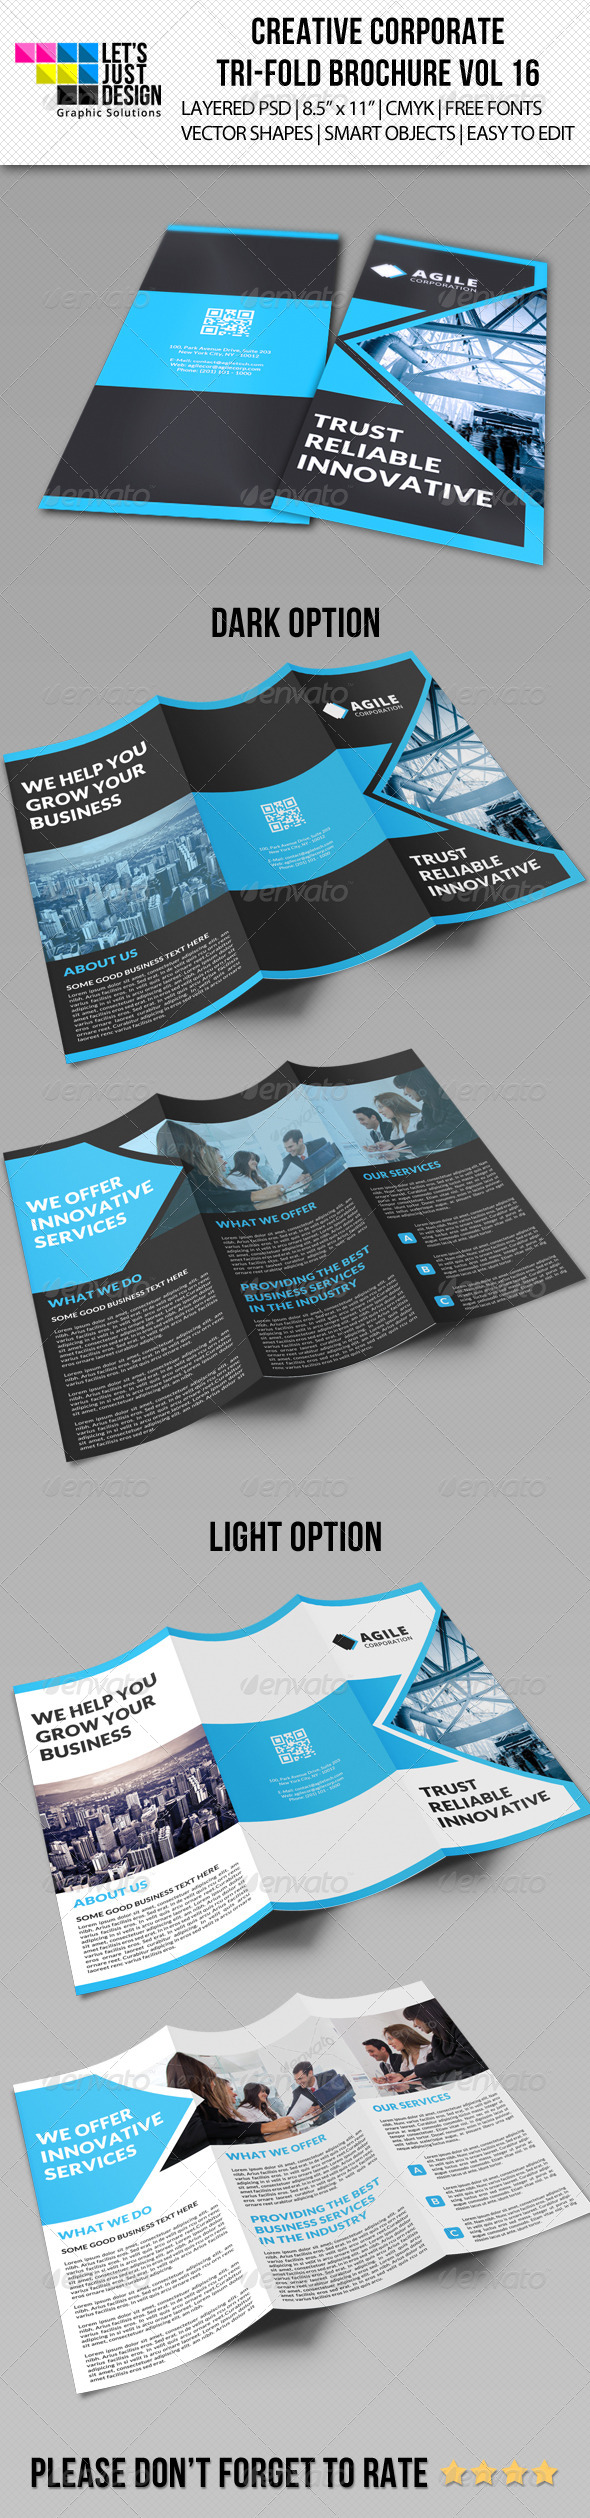 GraphicRiver Creative Corporate Tri-Fold Brochure Vol 16 7841363